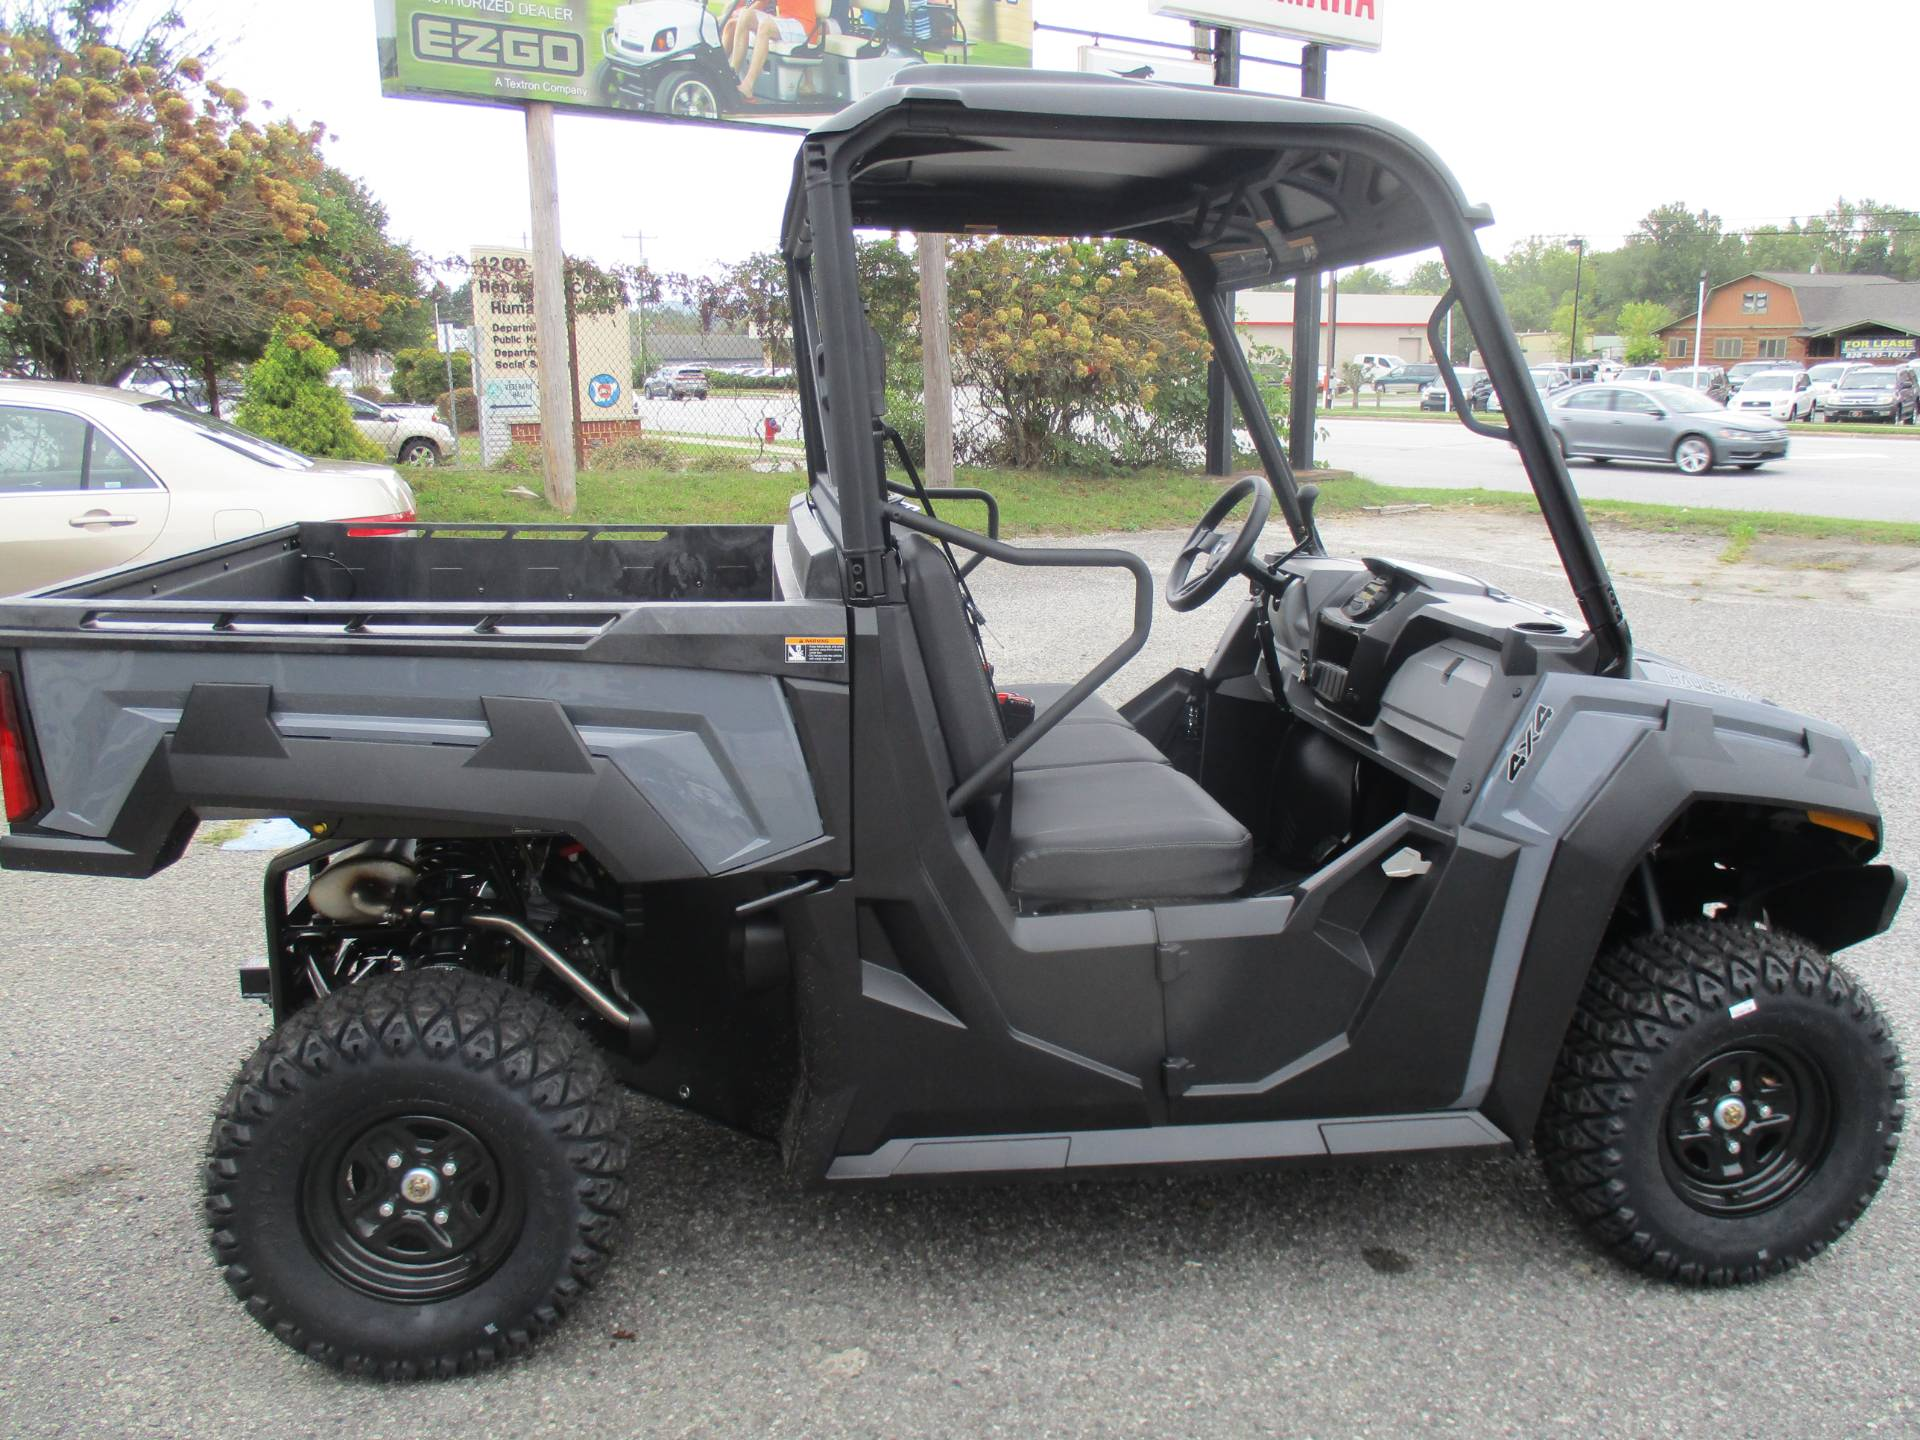 2020 Cushman Hauler 4x4 in Hendersonville, North Carolina - Photo 10